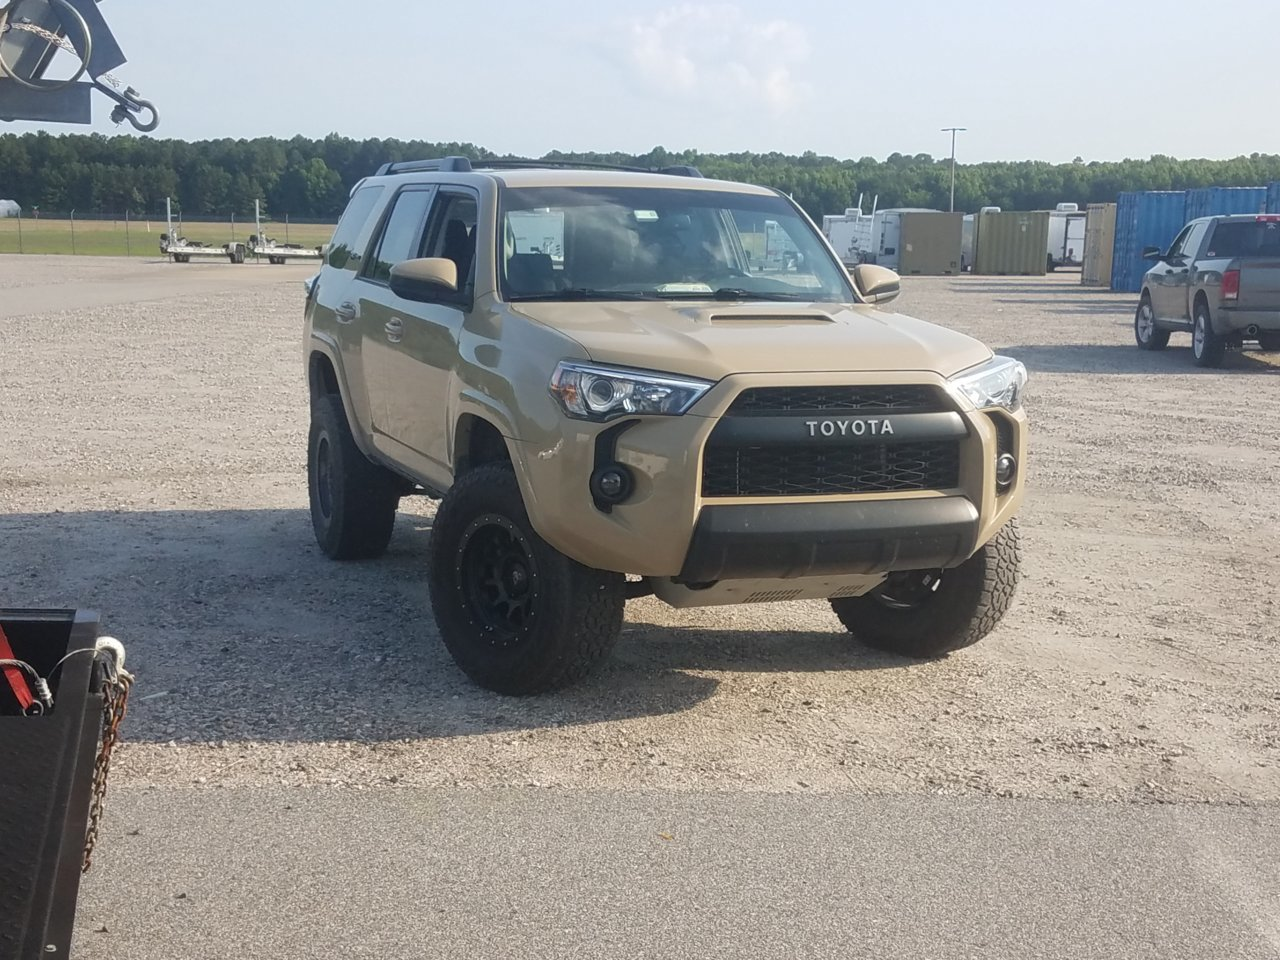 2019 Trd Pro Fox Suspension And Spacer Lift Toyota 4runner Forum 4runners Com